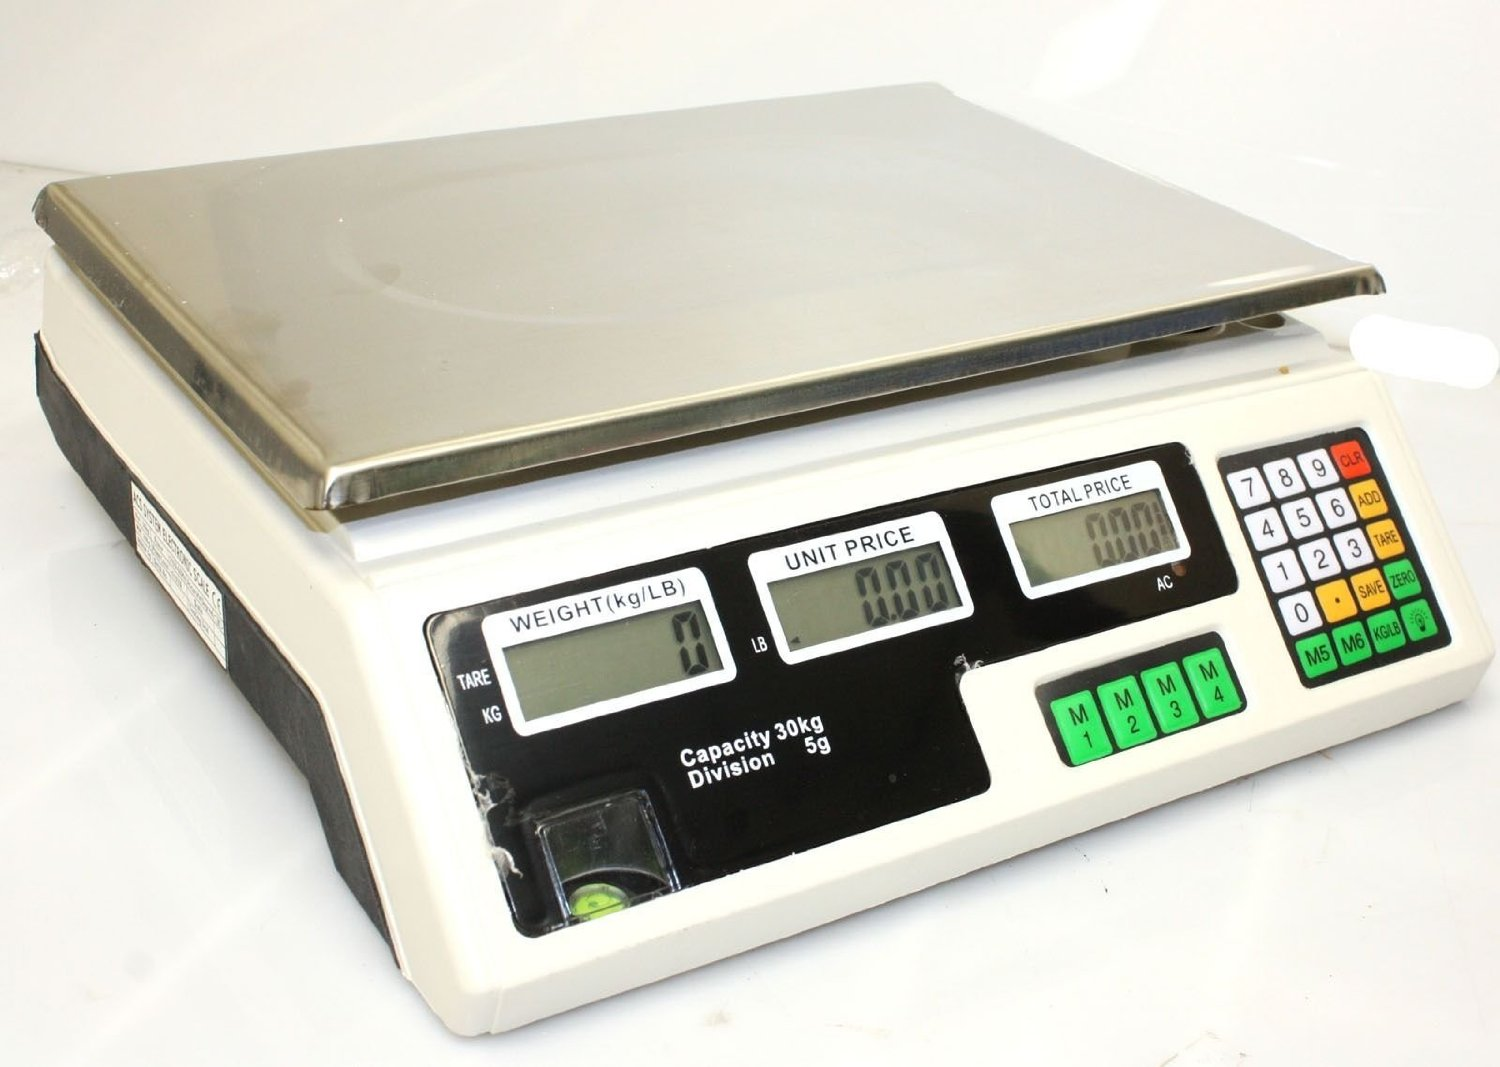 66 LB 30KG//1g Digital Weight Scale Price Computing Food Meat Produce Deli Market